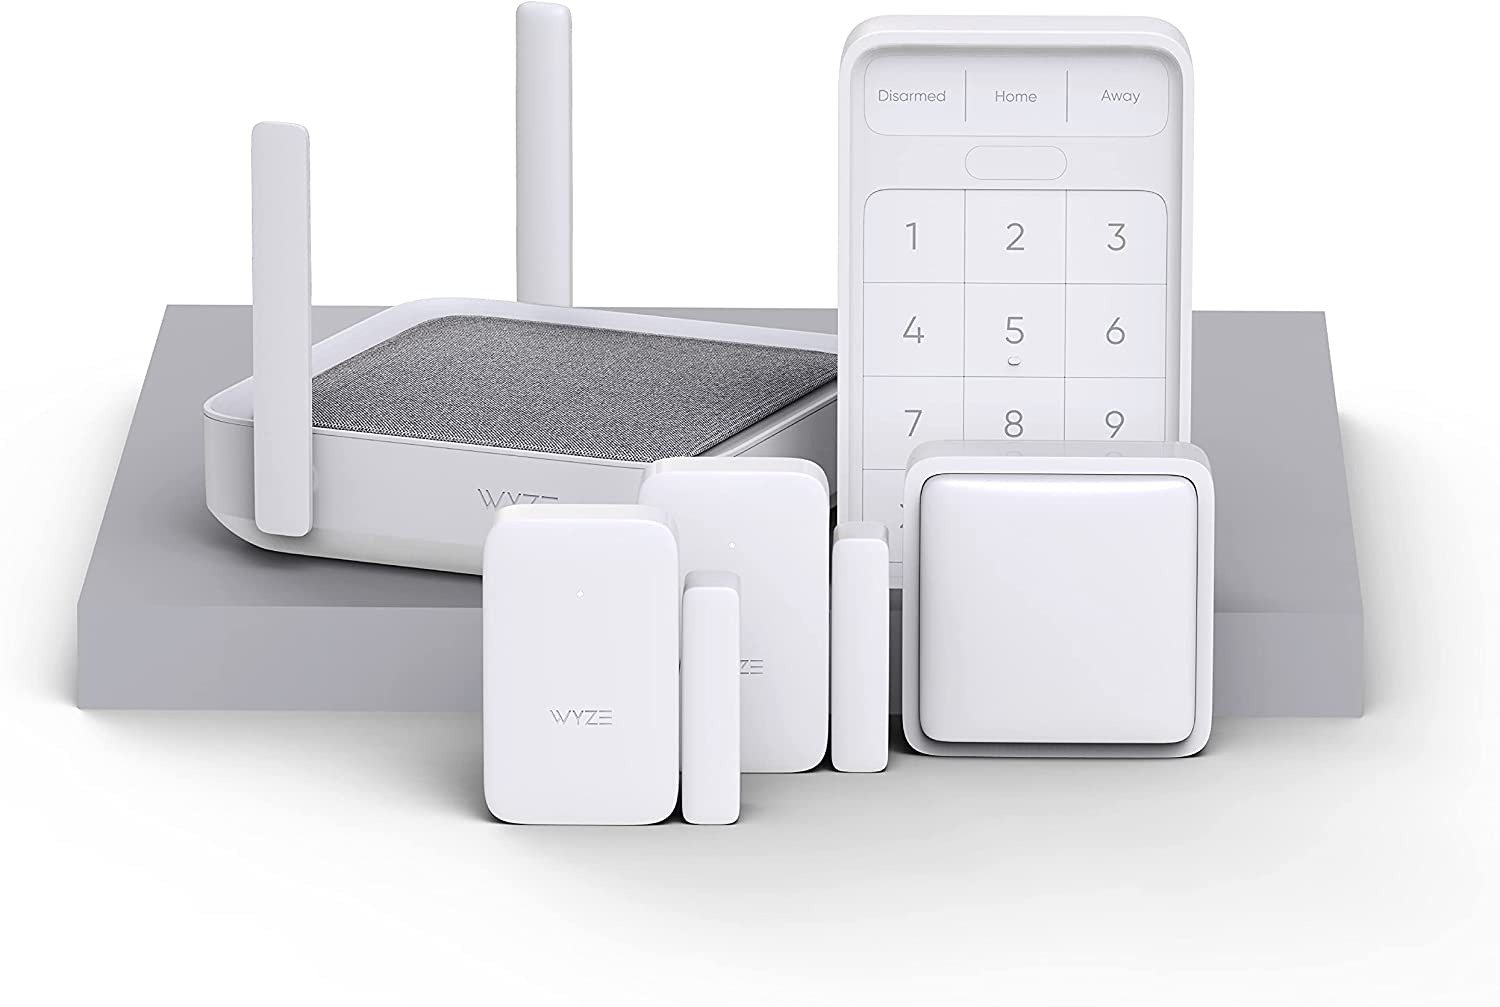 Wyze Home Security System Core Kit